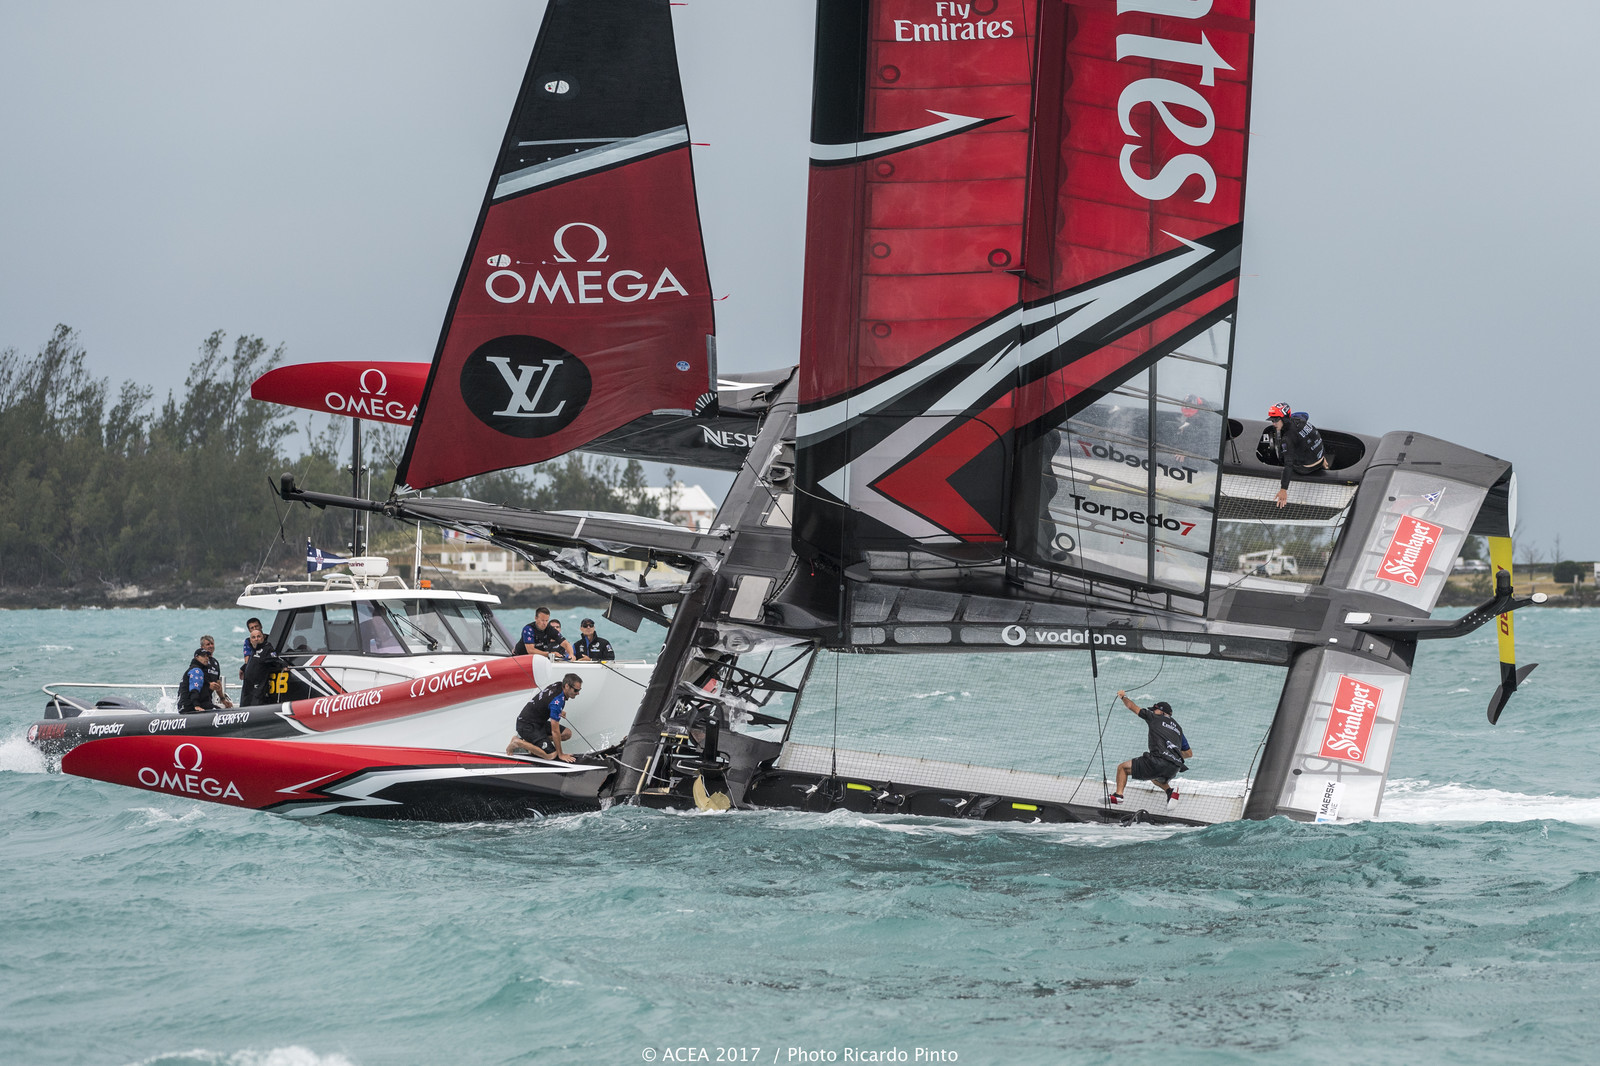 Land Rover Southampton >> America's Cup: Hair raising! The most dramatic moments of the competition in pictures - YBW